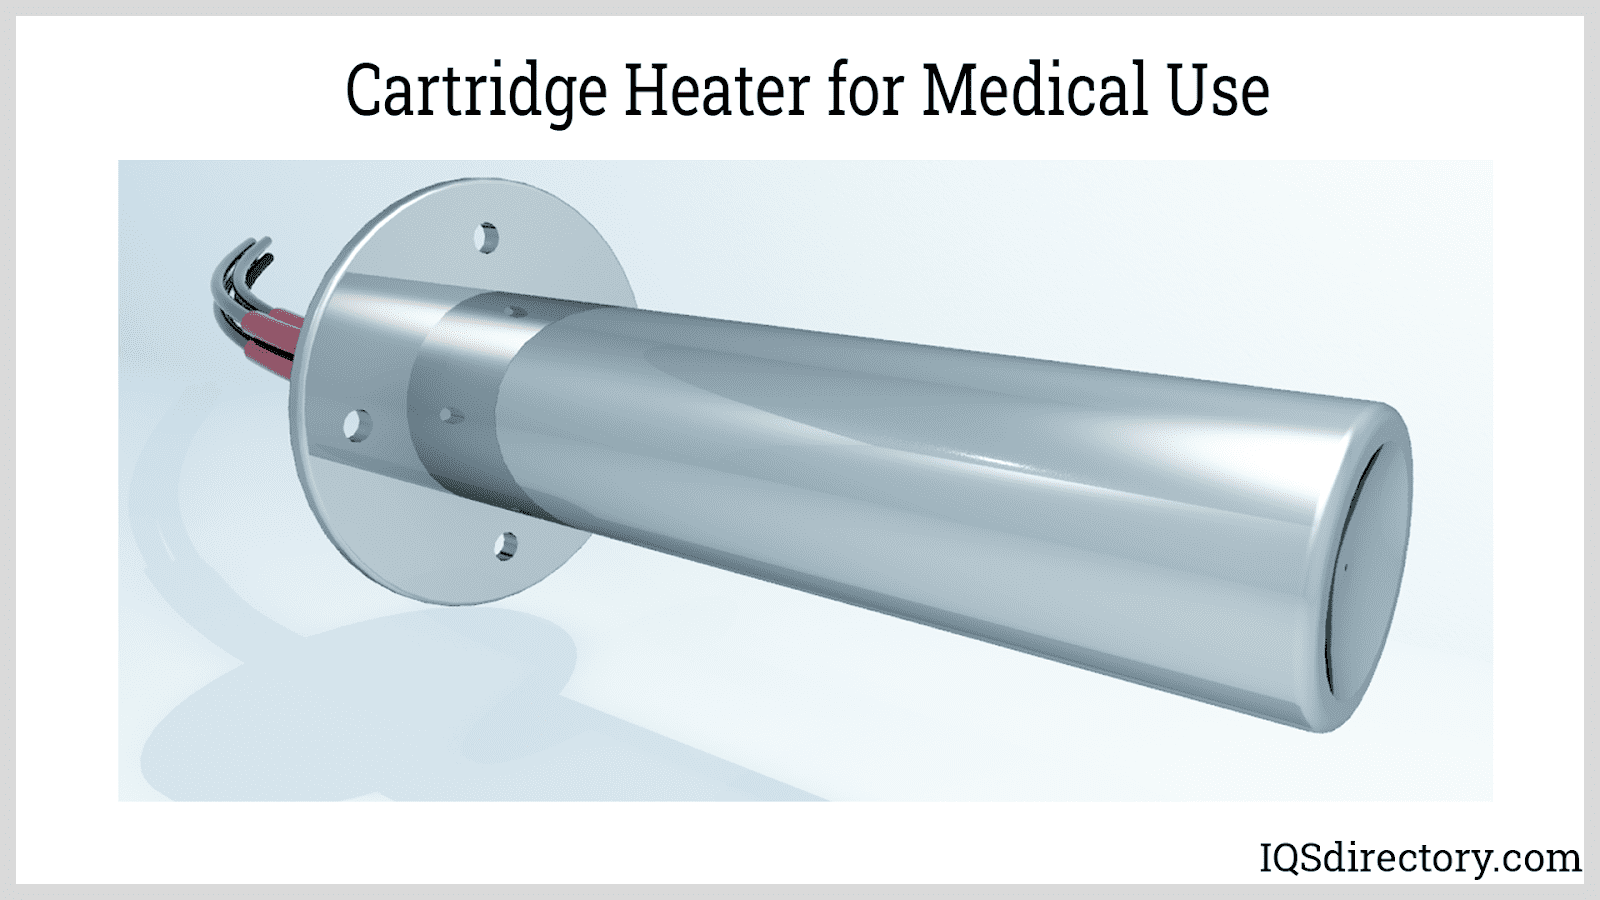 Cartridge Heater for Medical Use